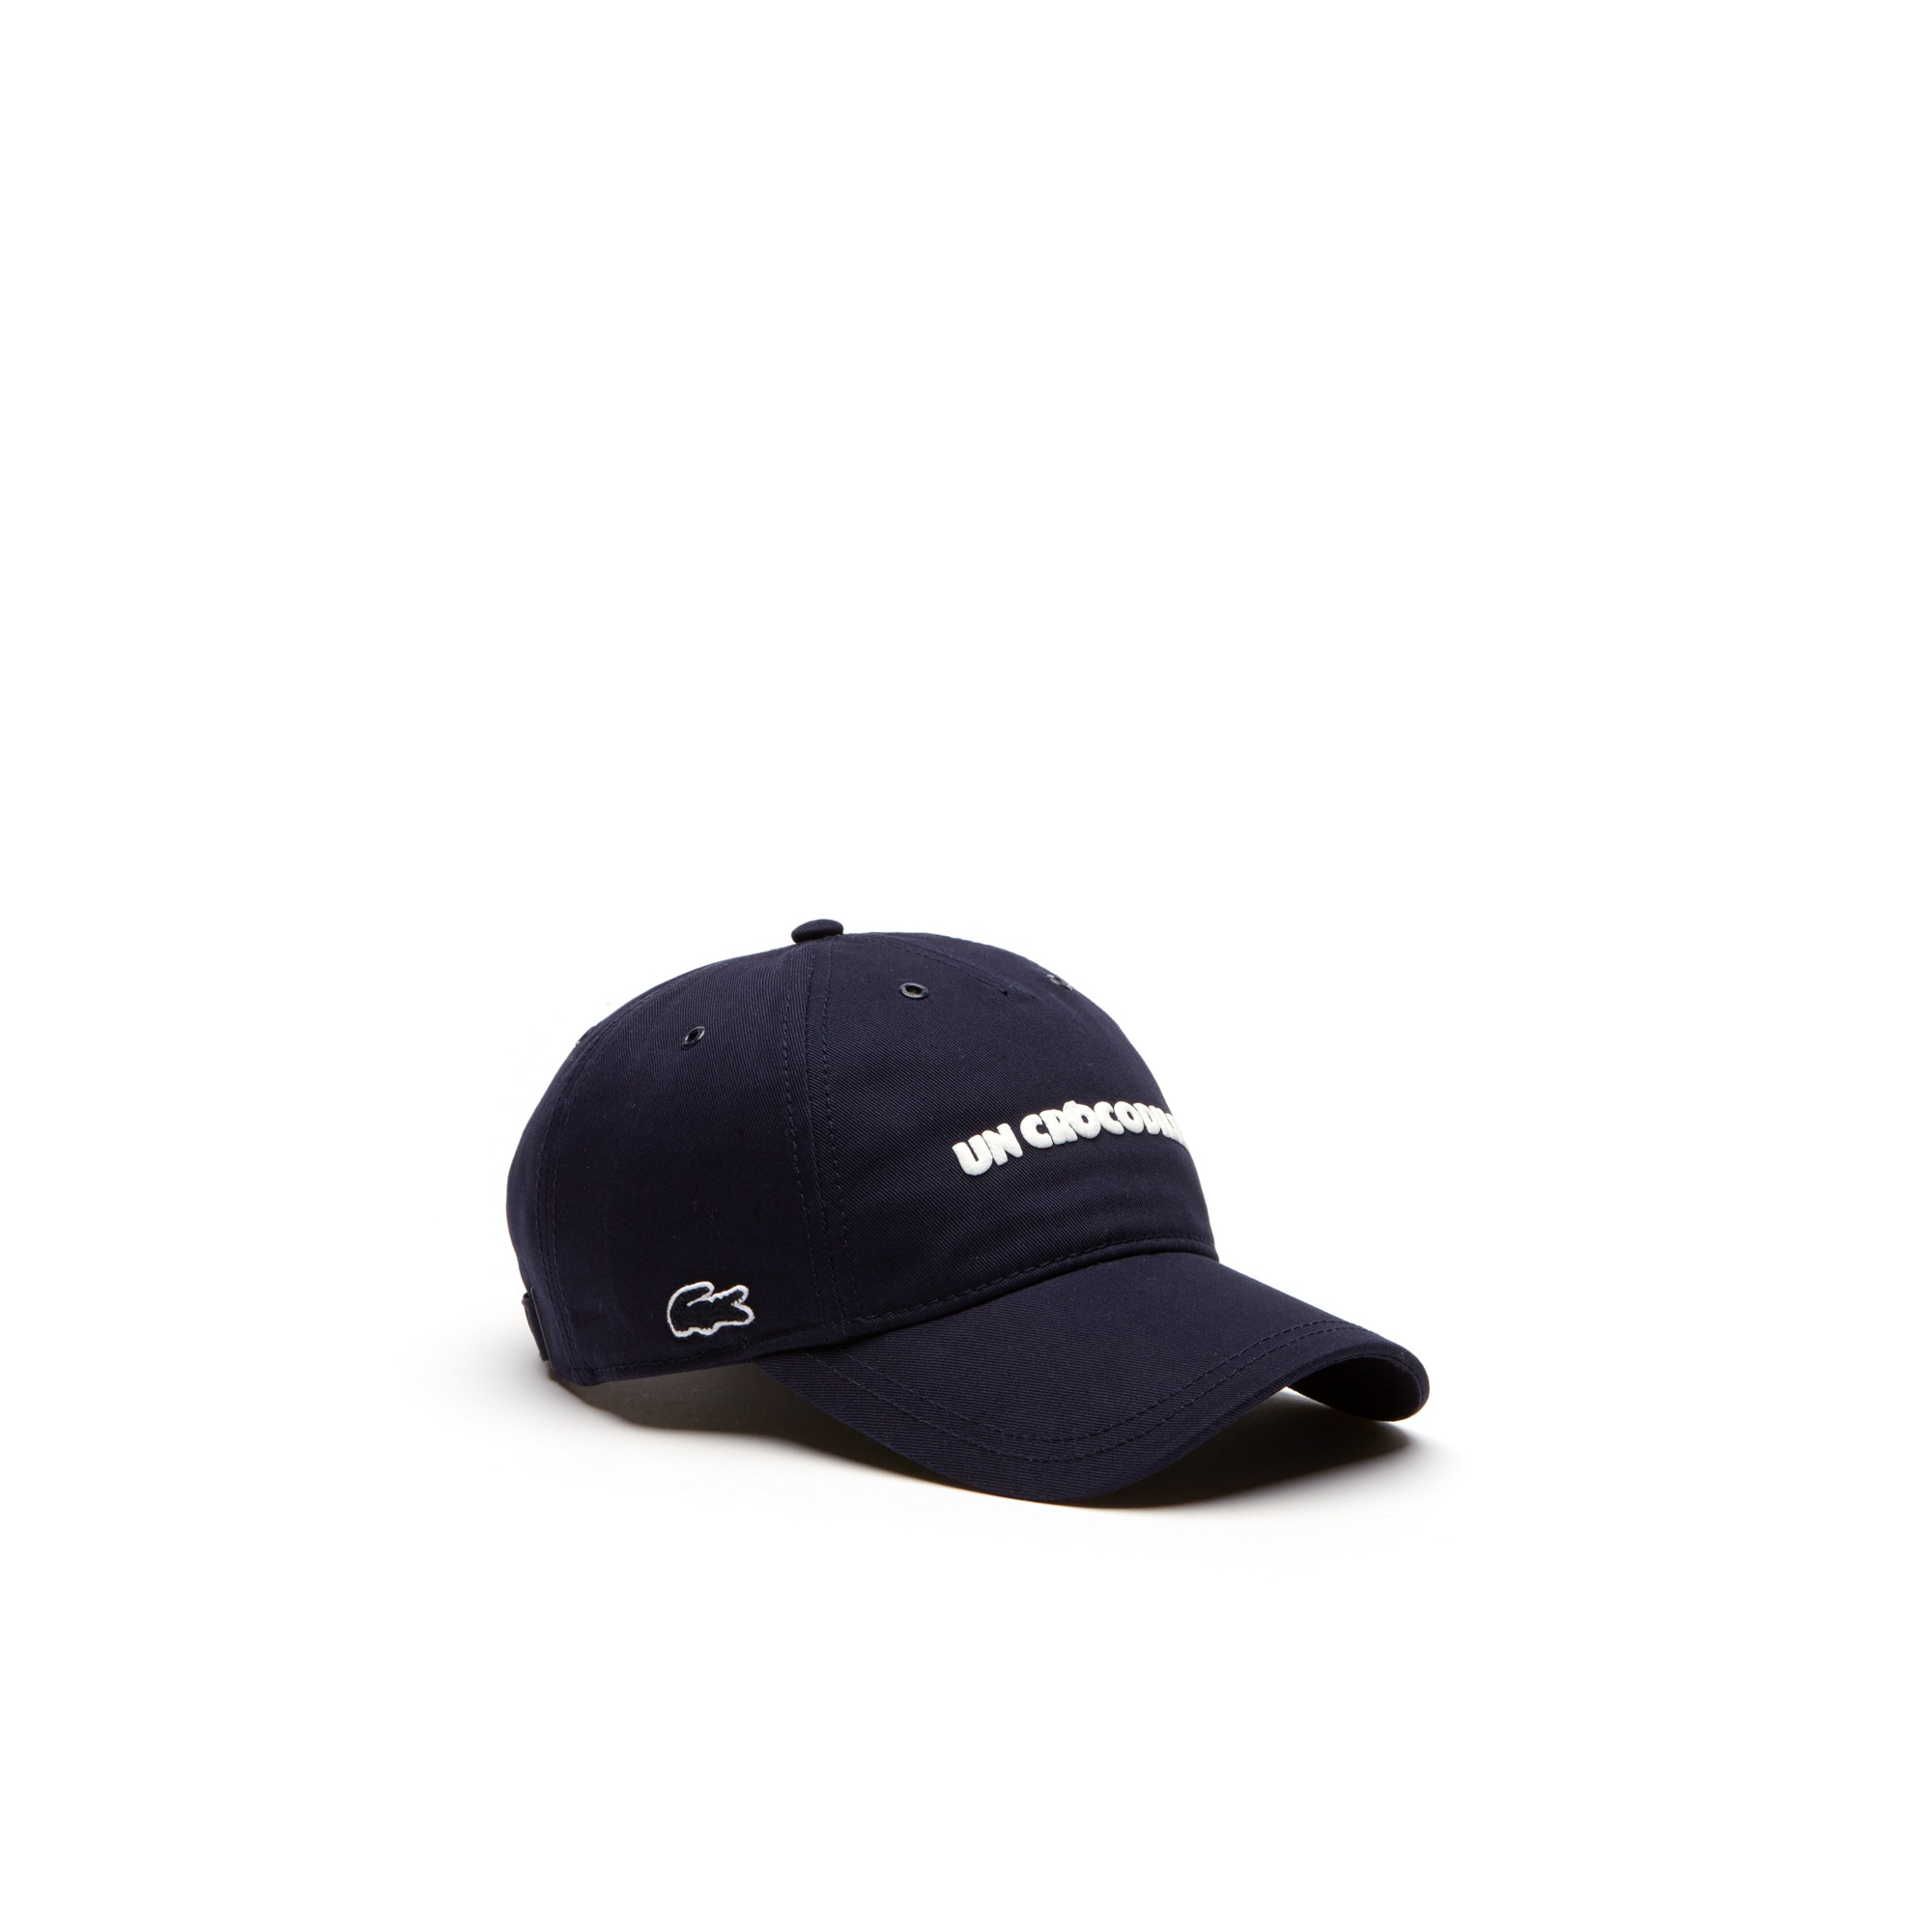 Men's Un Crocodile Lettering Gabardine Cotton Cap